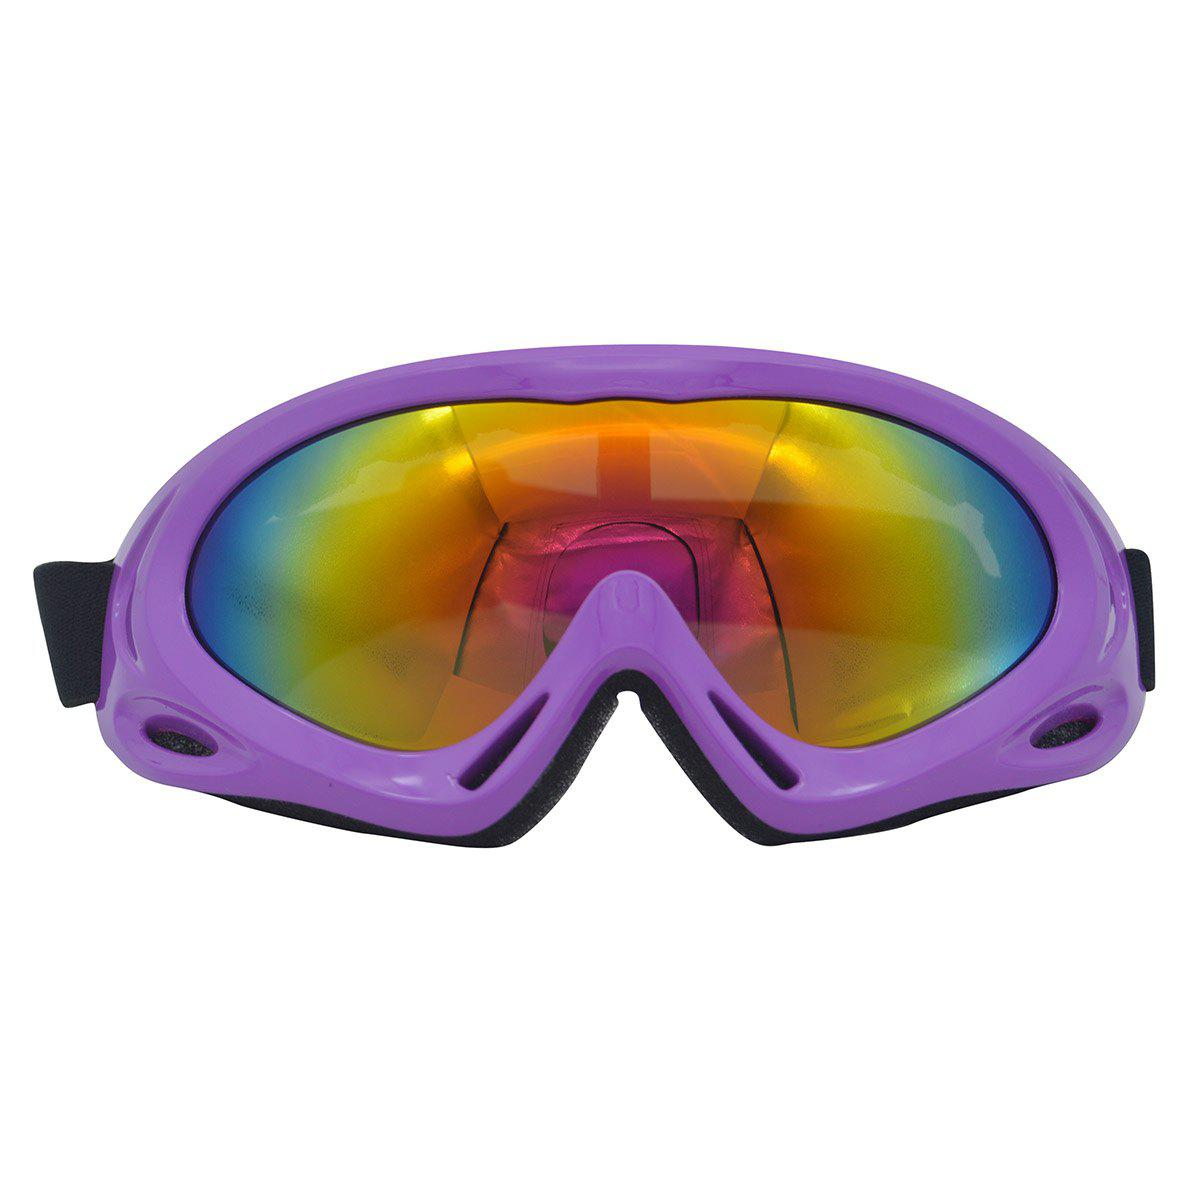 Dustproof Anti Fog UV Protection Riding Goggles - PURPLE